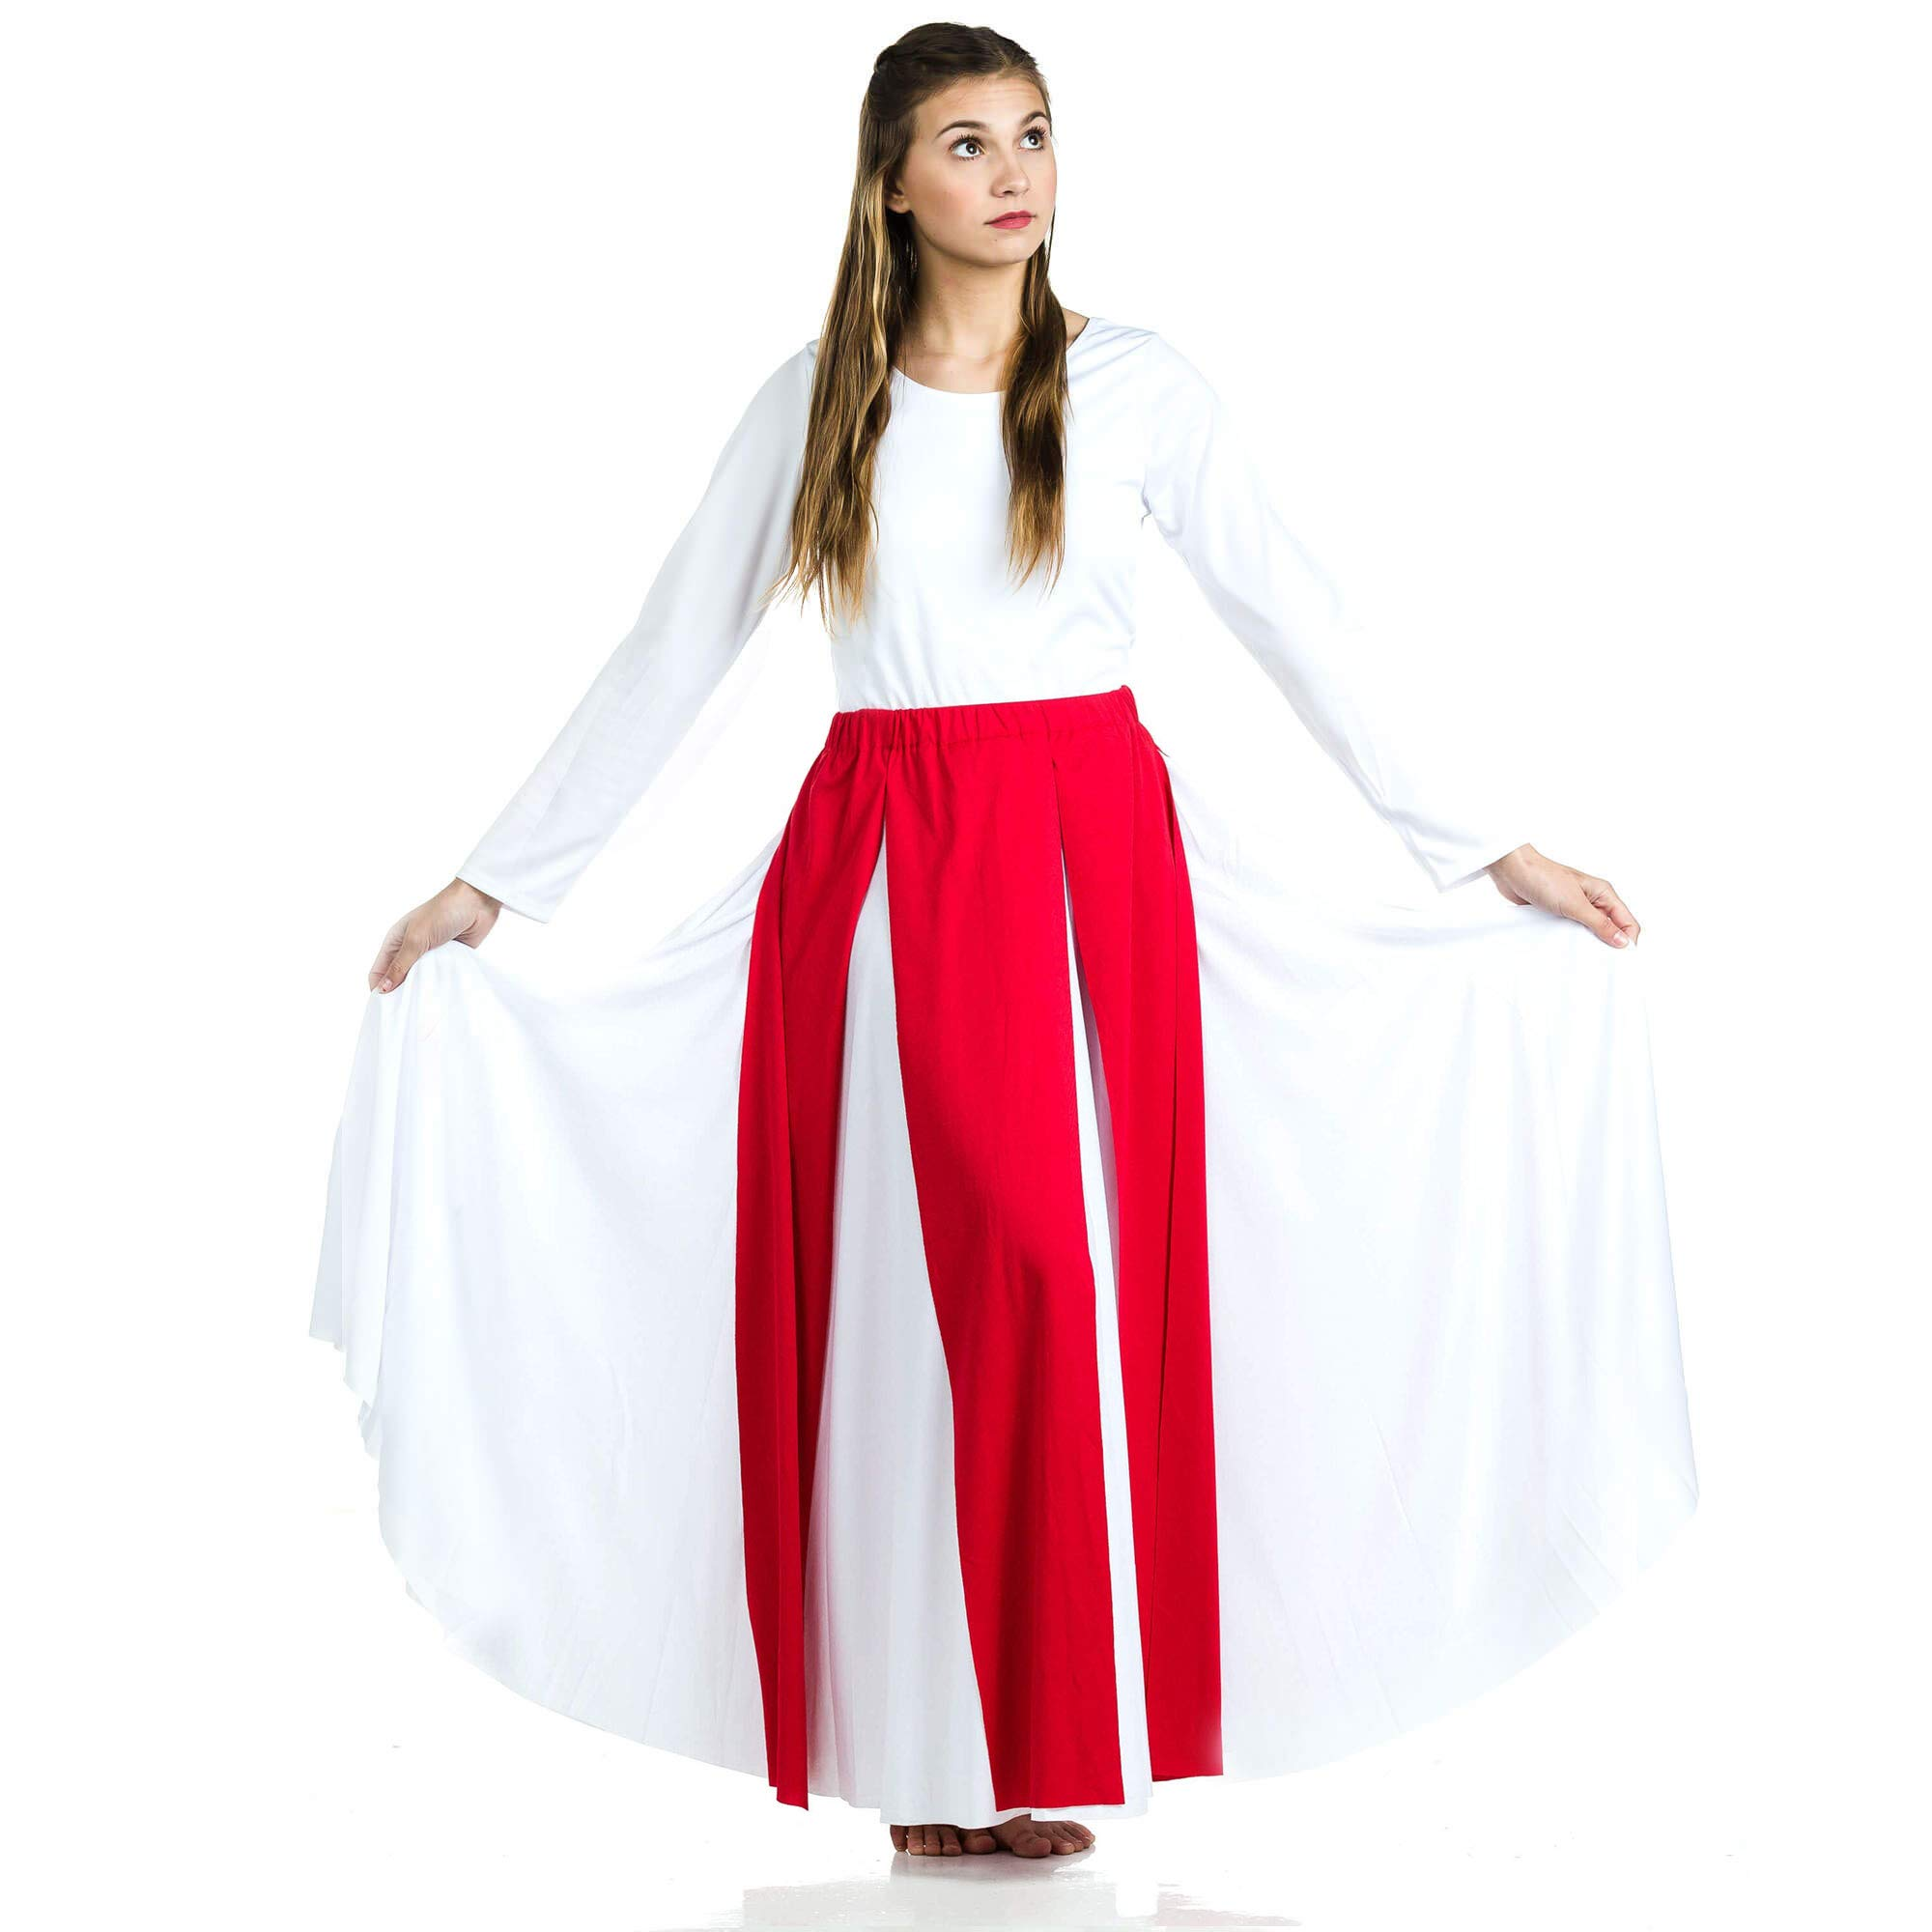 Danzcue Praise Dance Streamer Skirt, Scarlet, L-XL-Adult by Danzcue